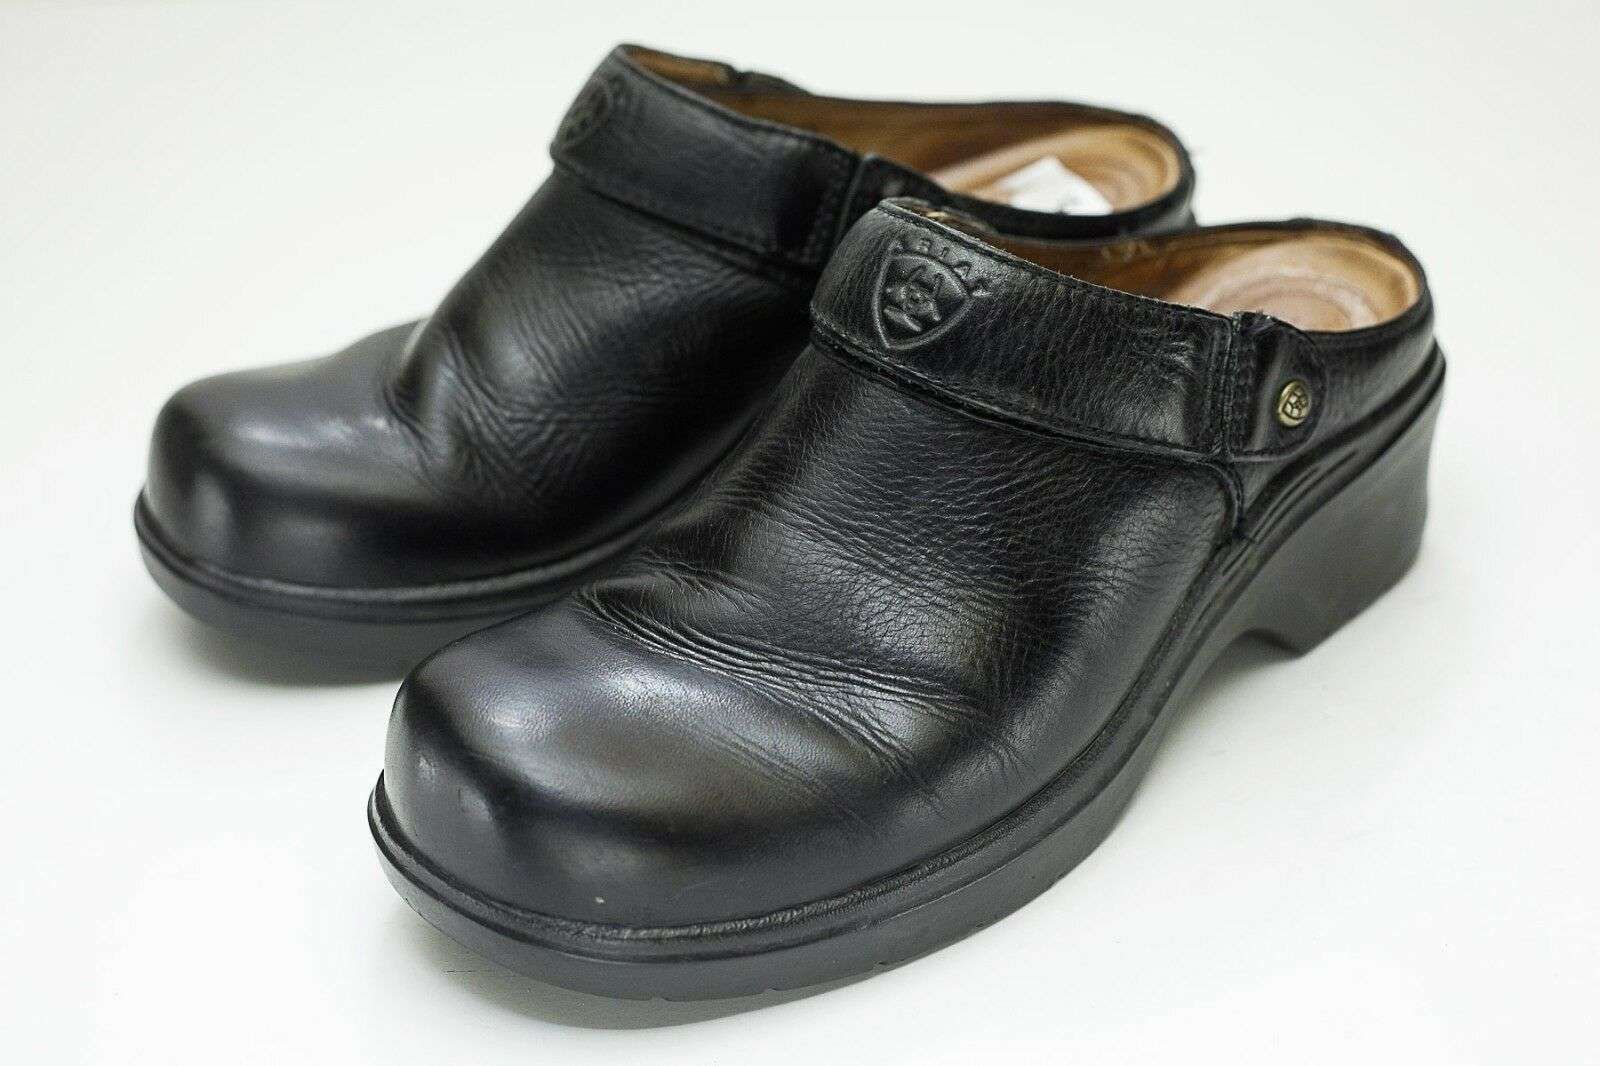 Ariat 7.5 Black Mule Clogs EU 38.5